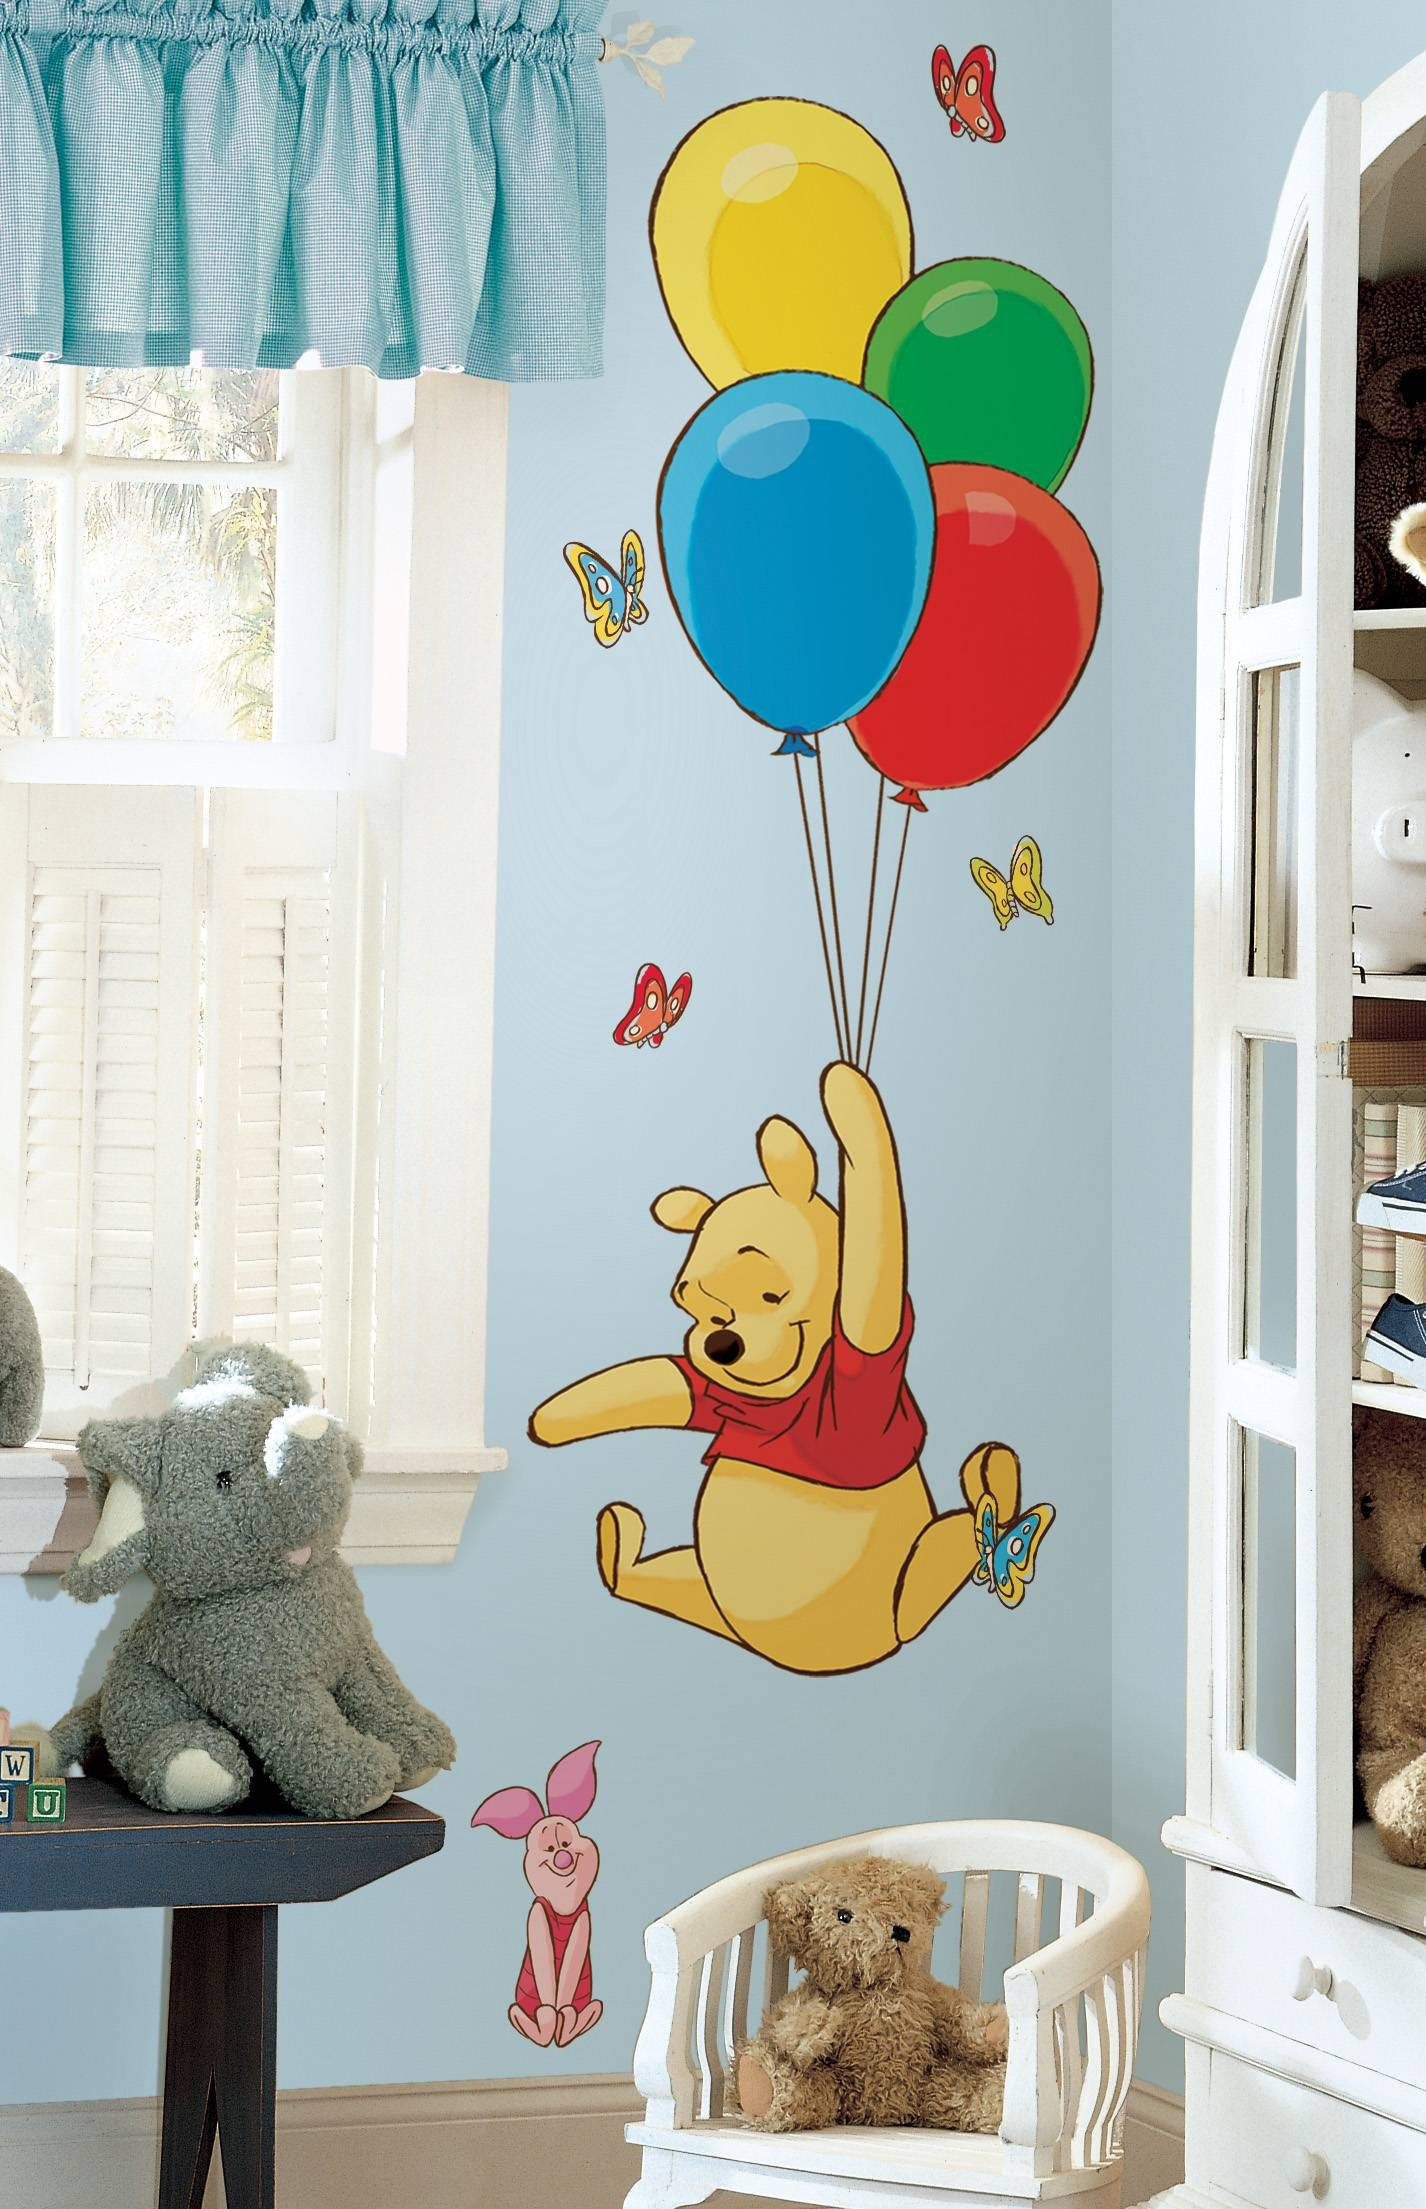 Decorating A Nursery With Winnie The Pooh With Regard To Most Recently Released Winnie The Pooh Wall Art For Nursery (View 7 of 15)